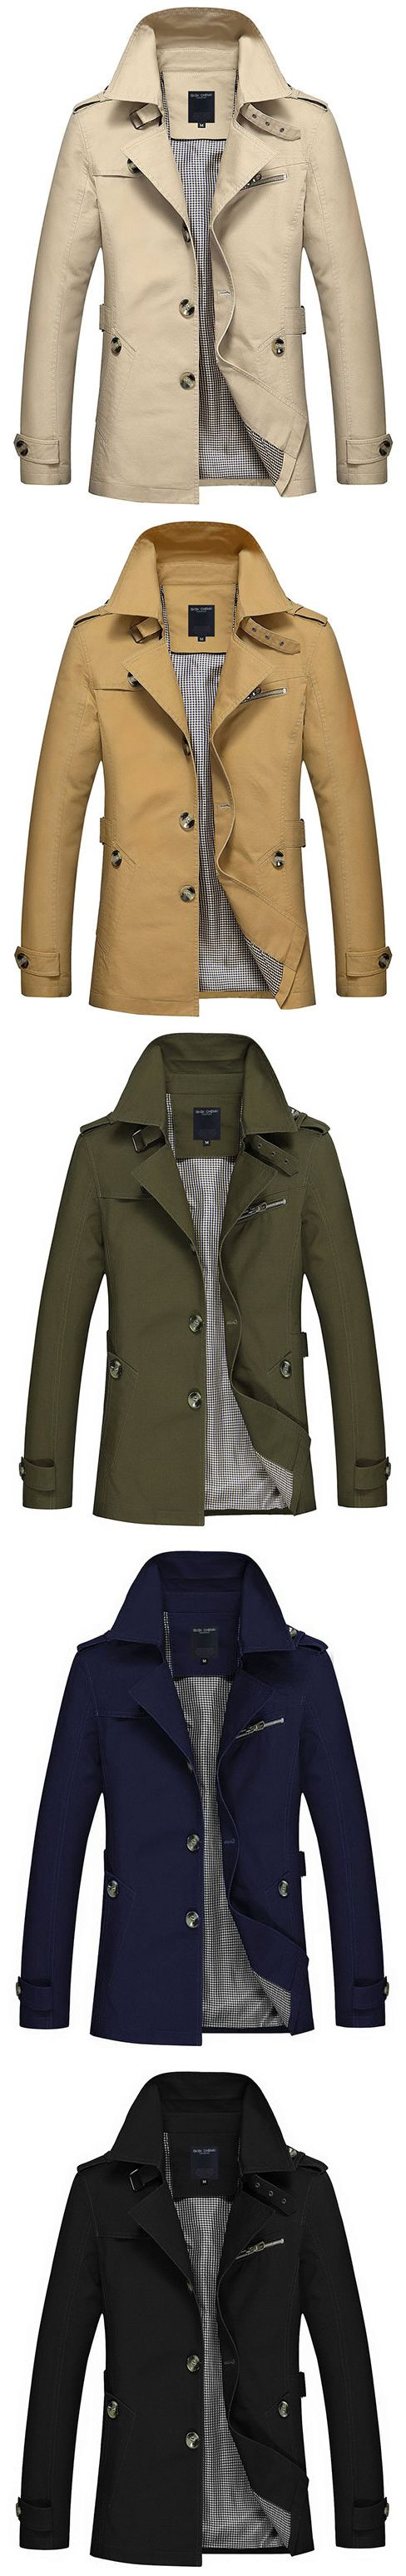 US$37.97 Business Casual Trench Coat Washed Cotton Turndown Collar Jacket for Men